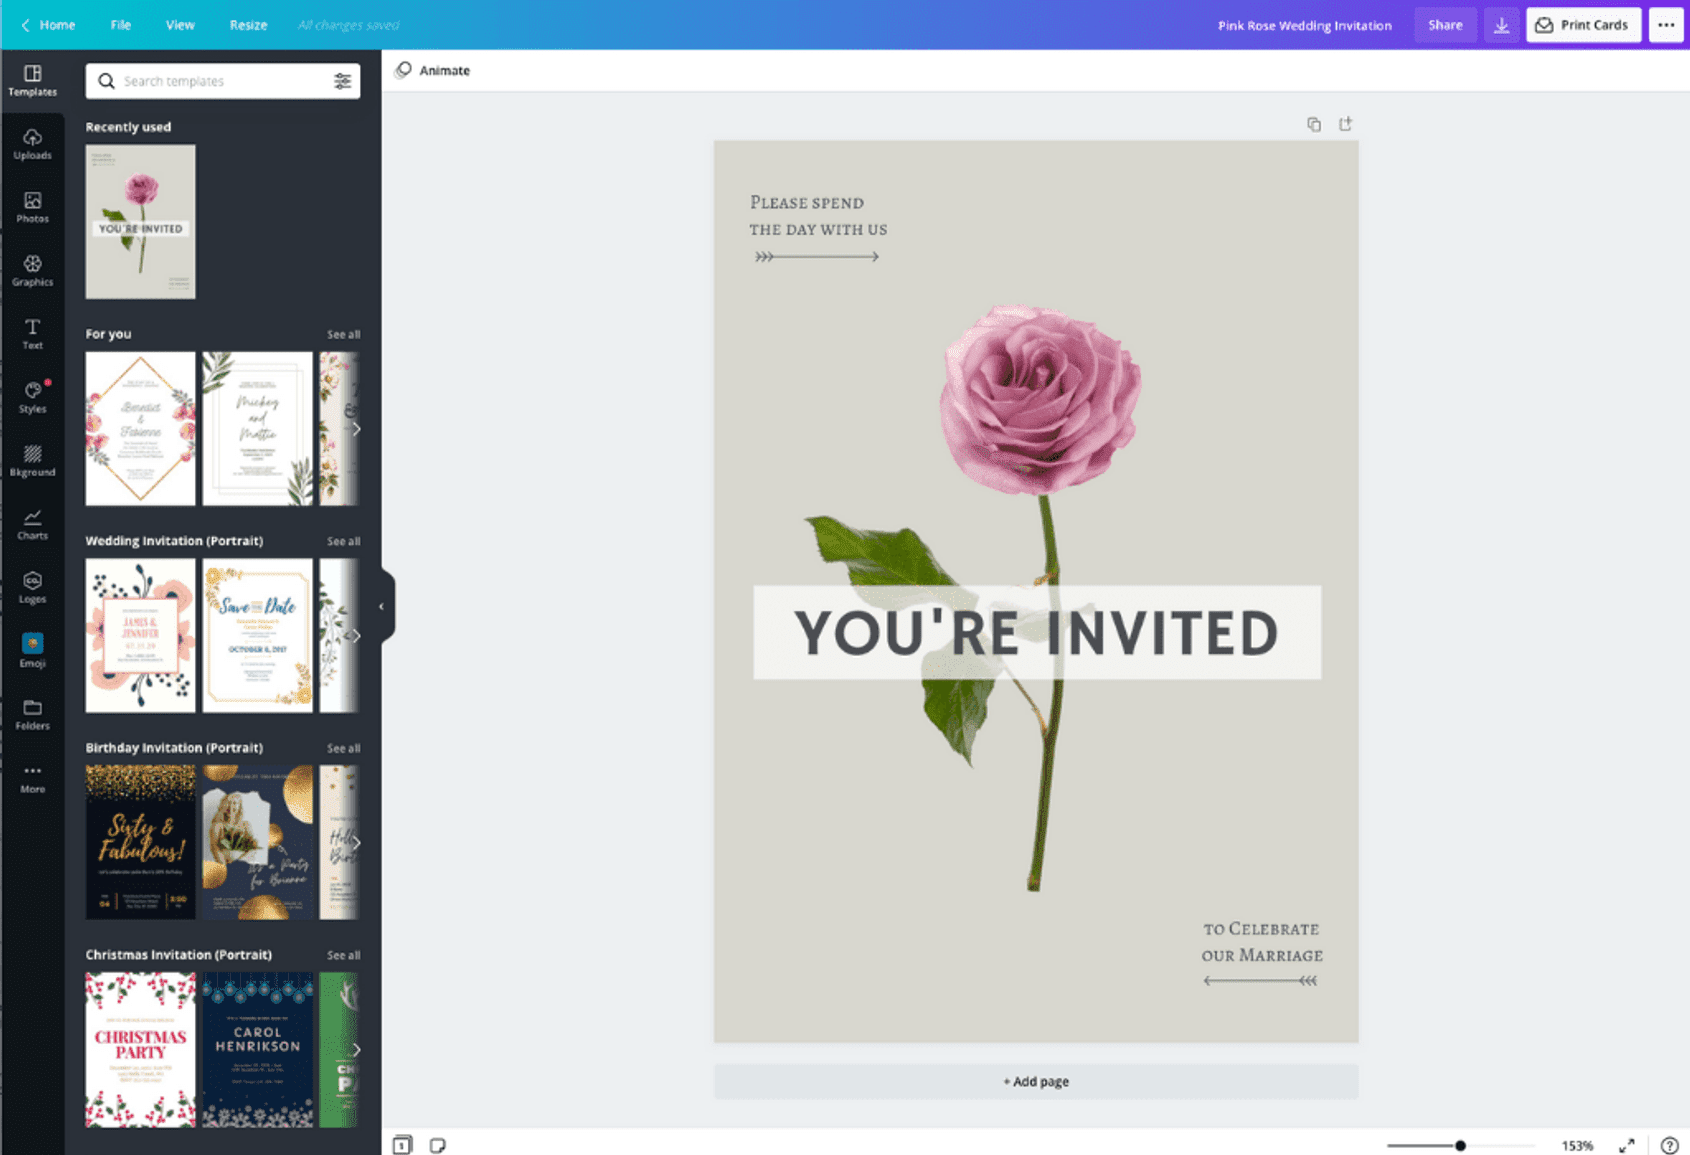 5-How-to-make-a-wedding-invitation-Canva.3498d672